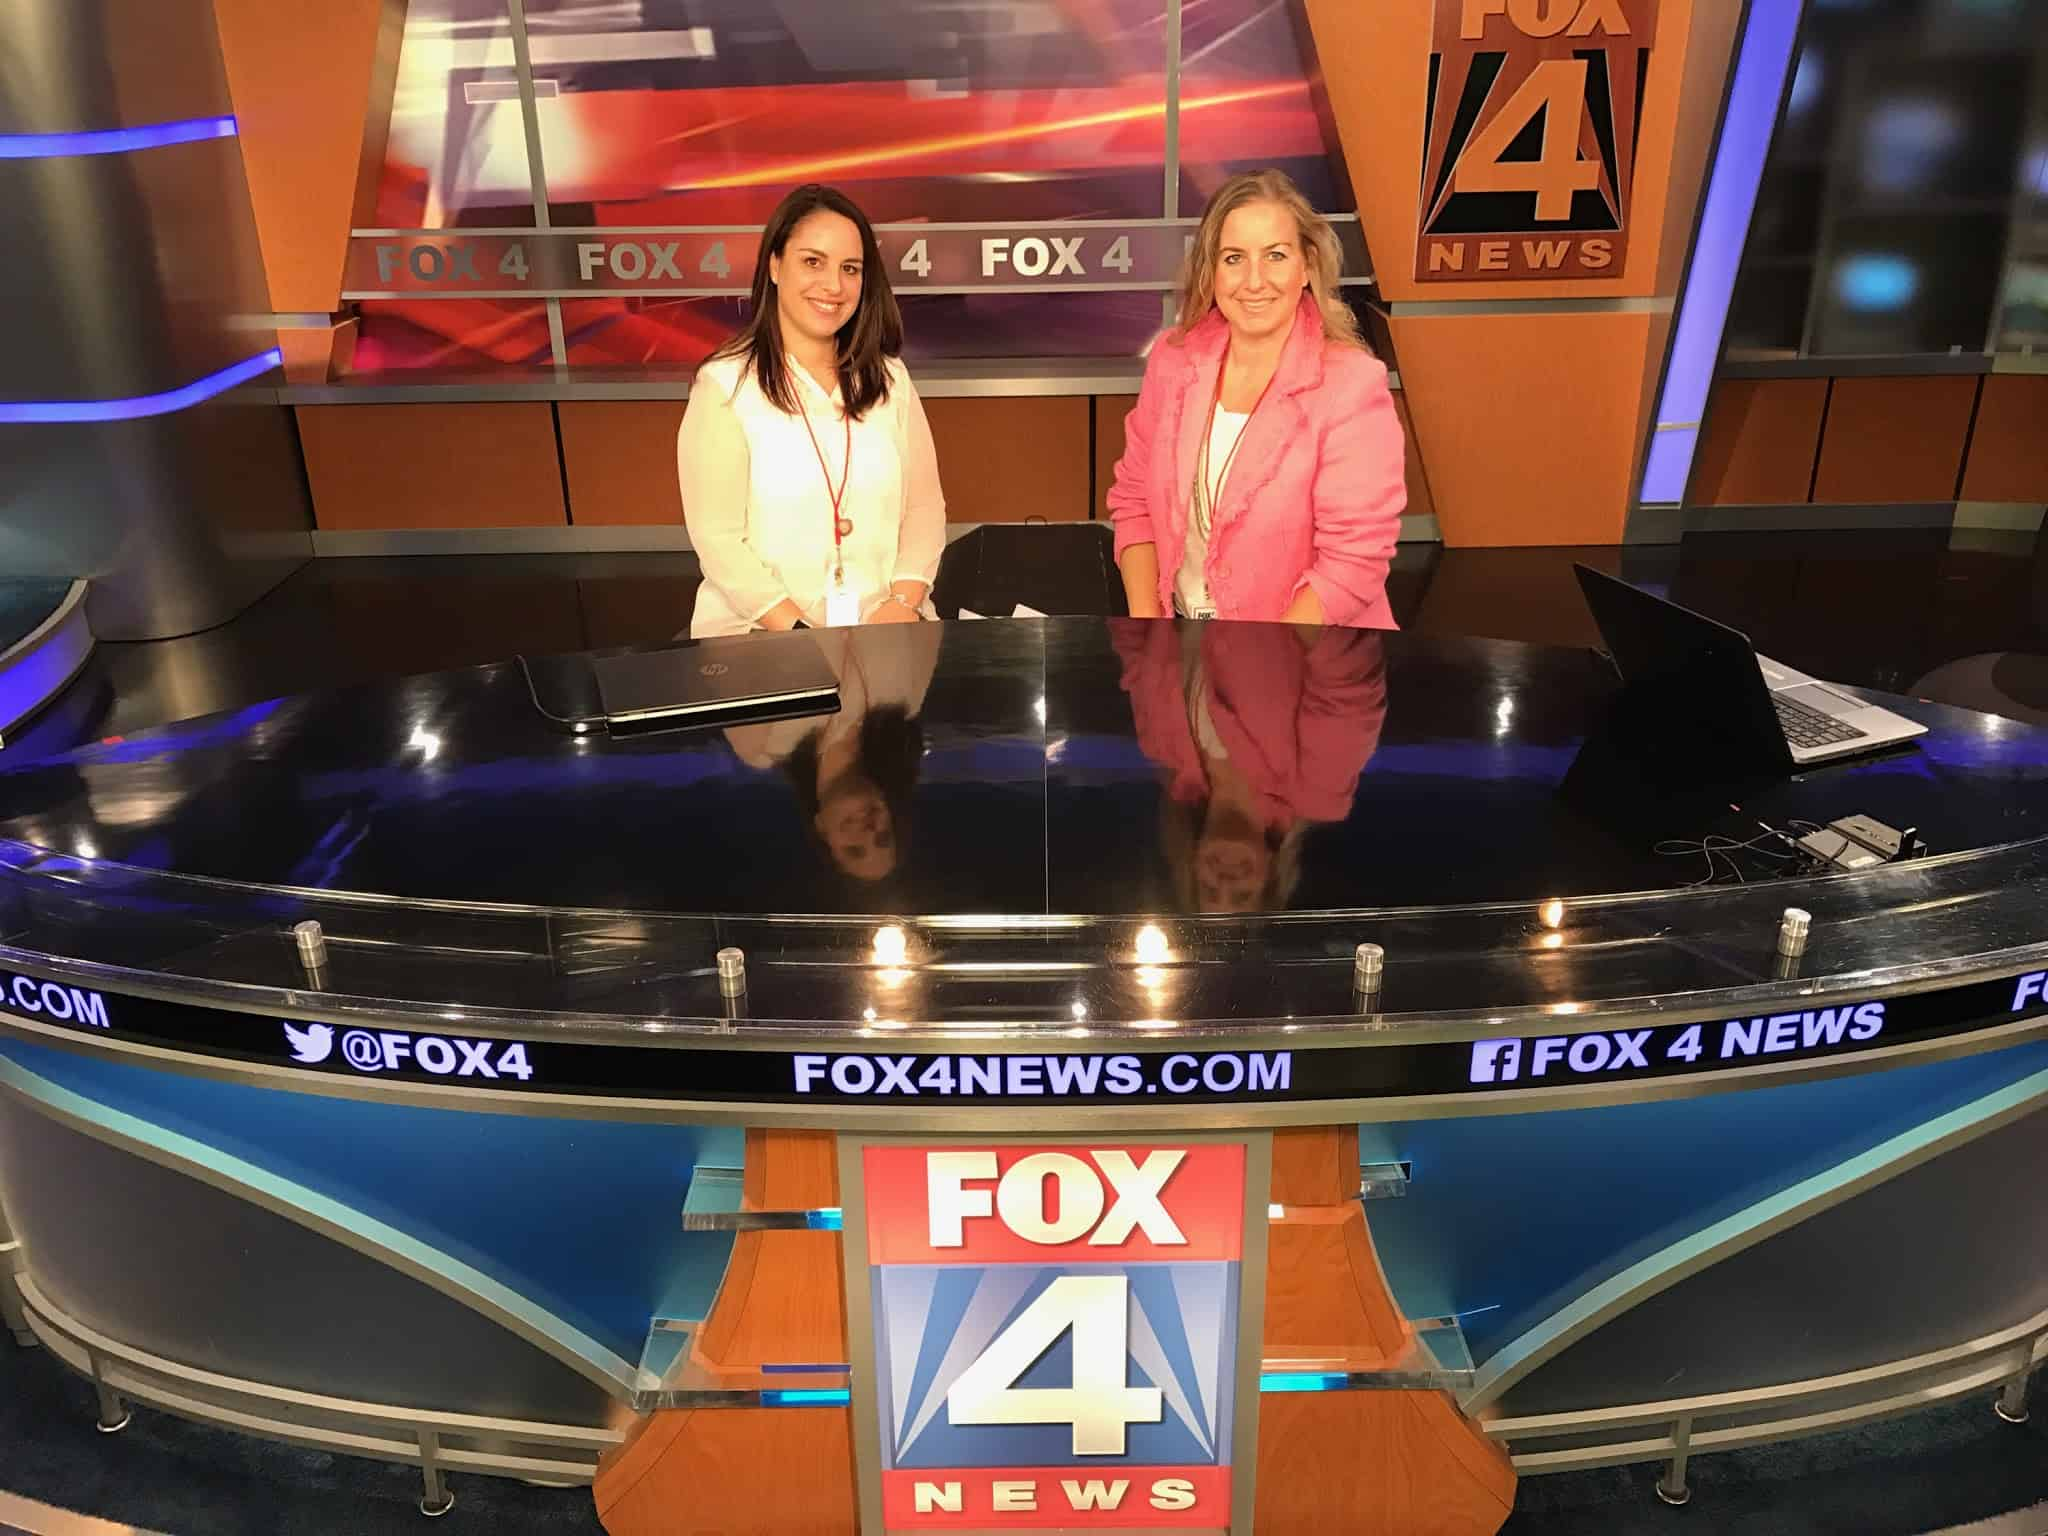 Abbie on Fox 4, Plano Moms featured